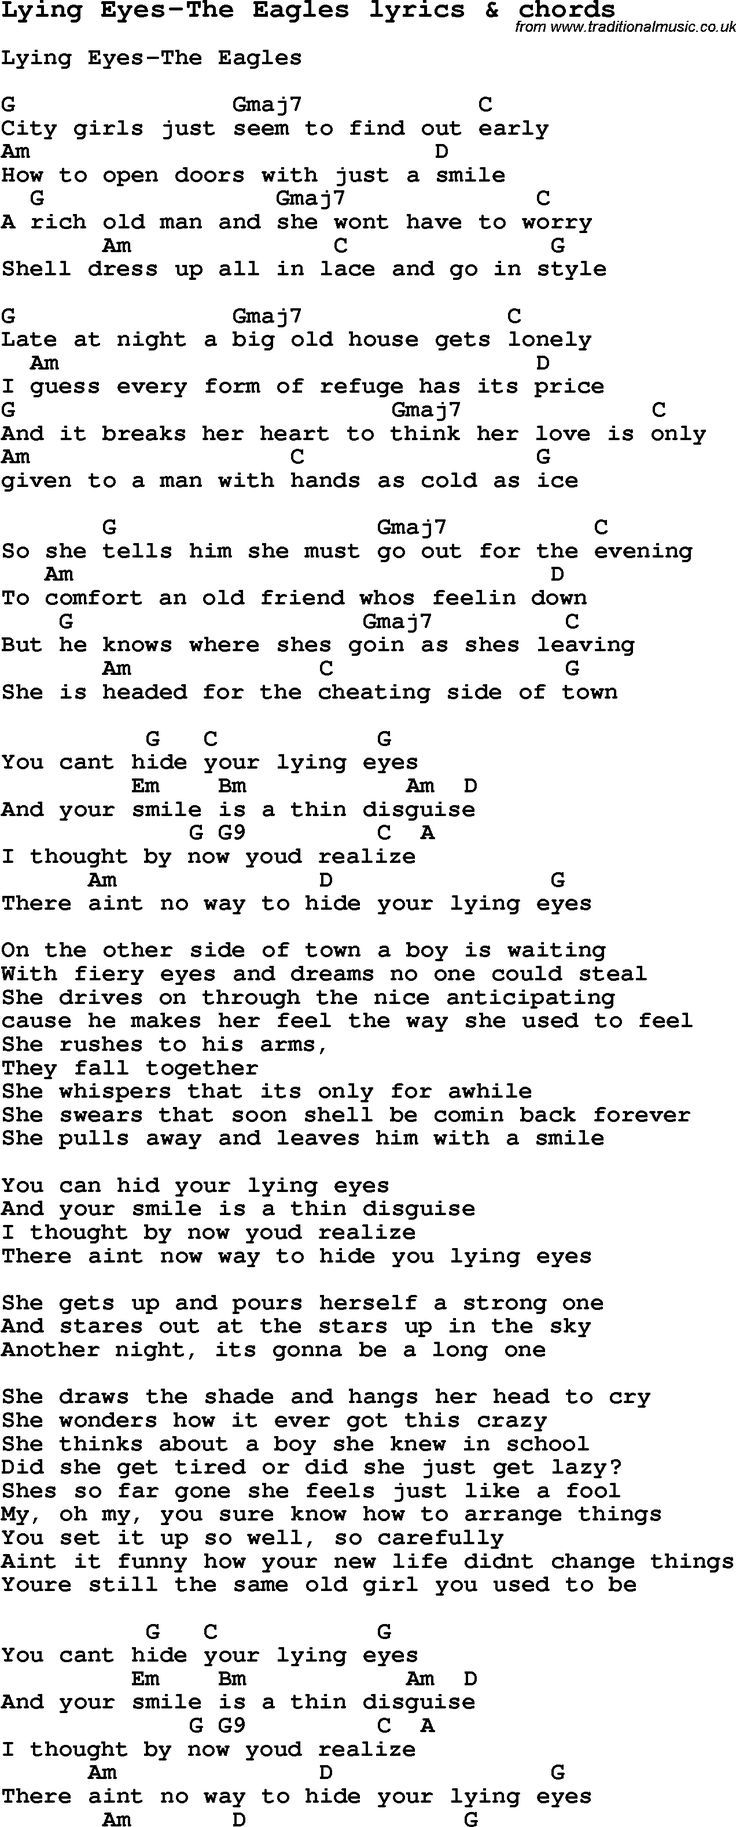 Love Song Lyrics for: Lying Eyes-The Eagles with chords for Ukulele, Guitar Banjo etc.